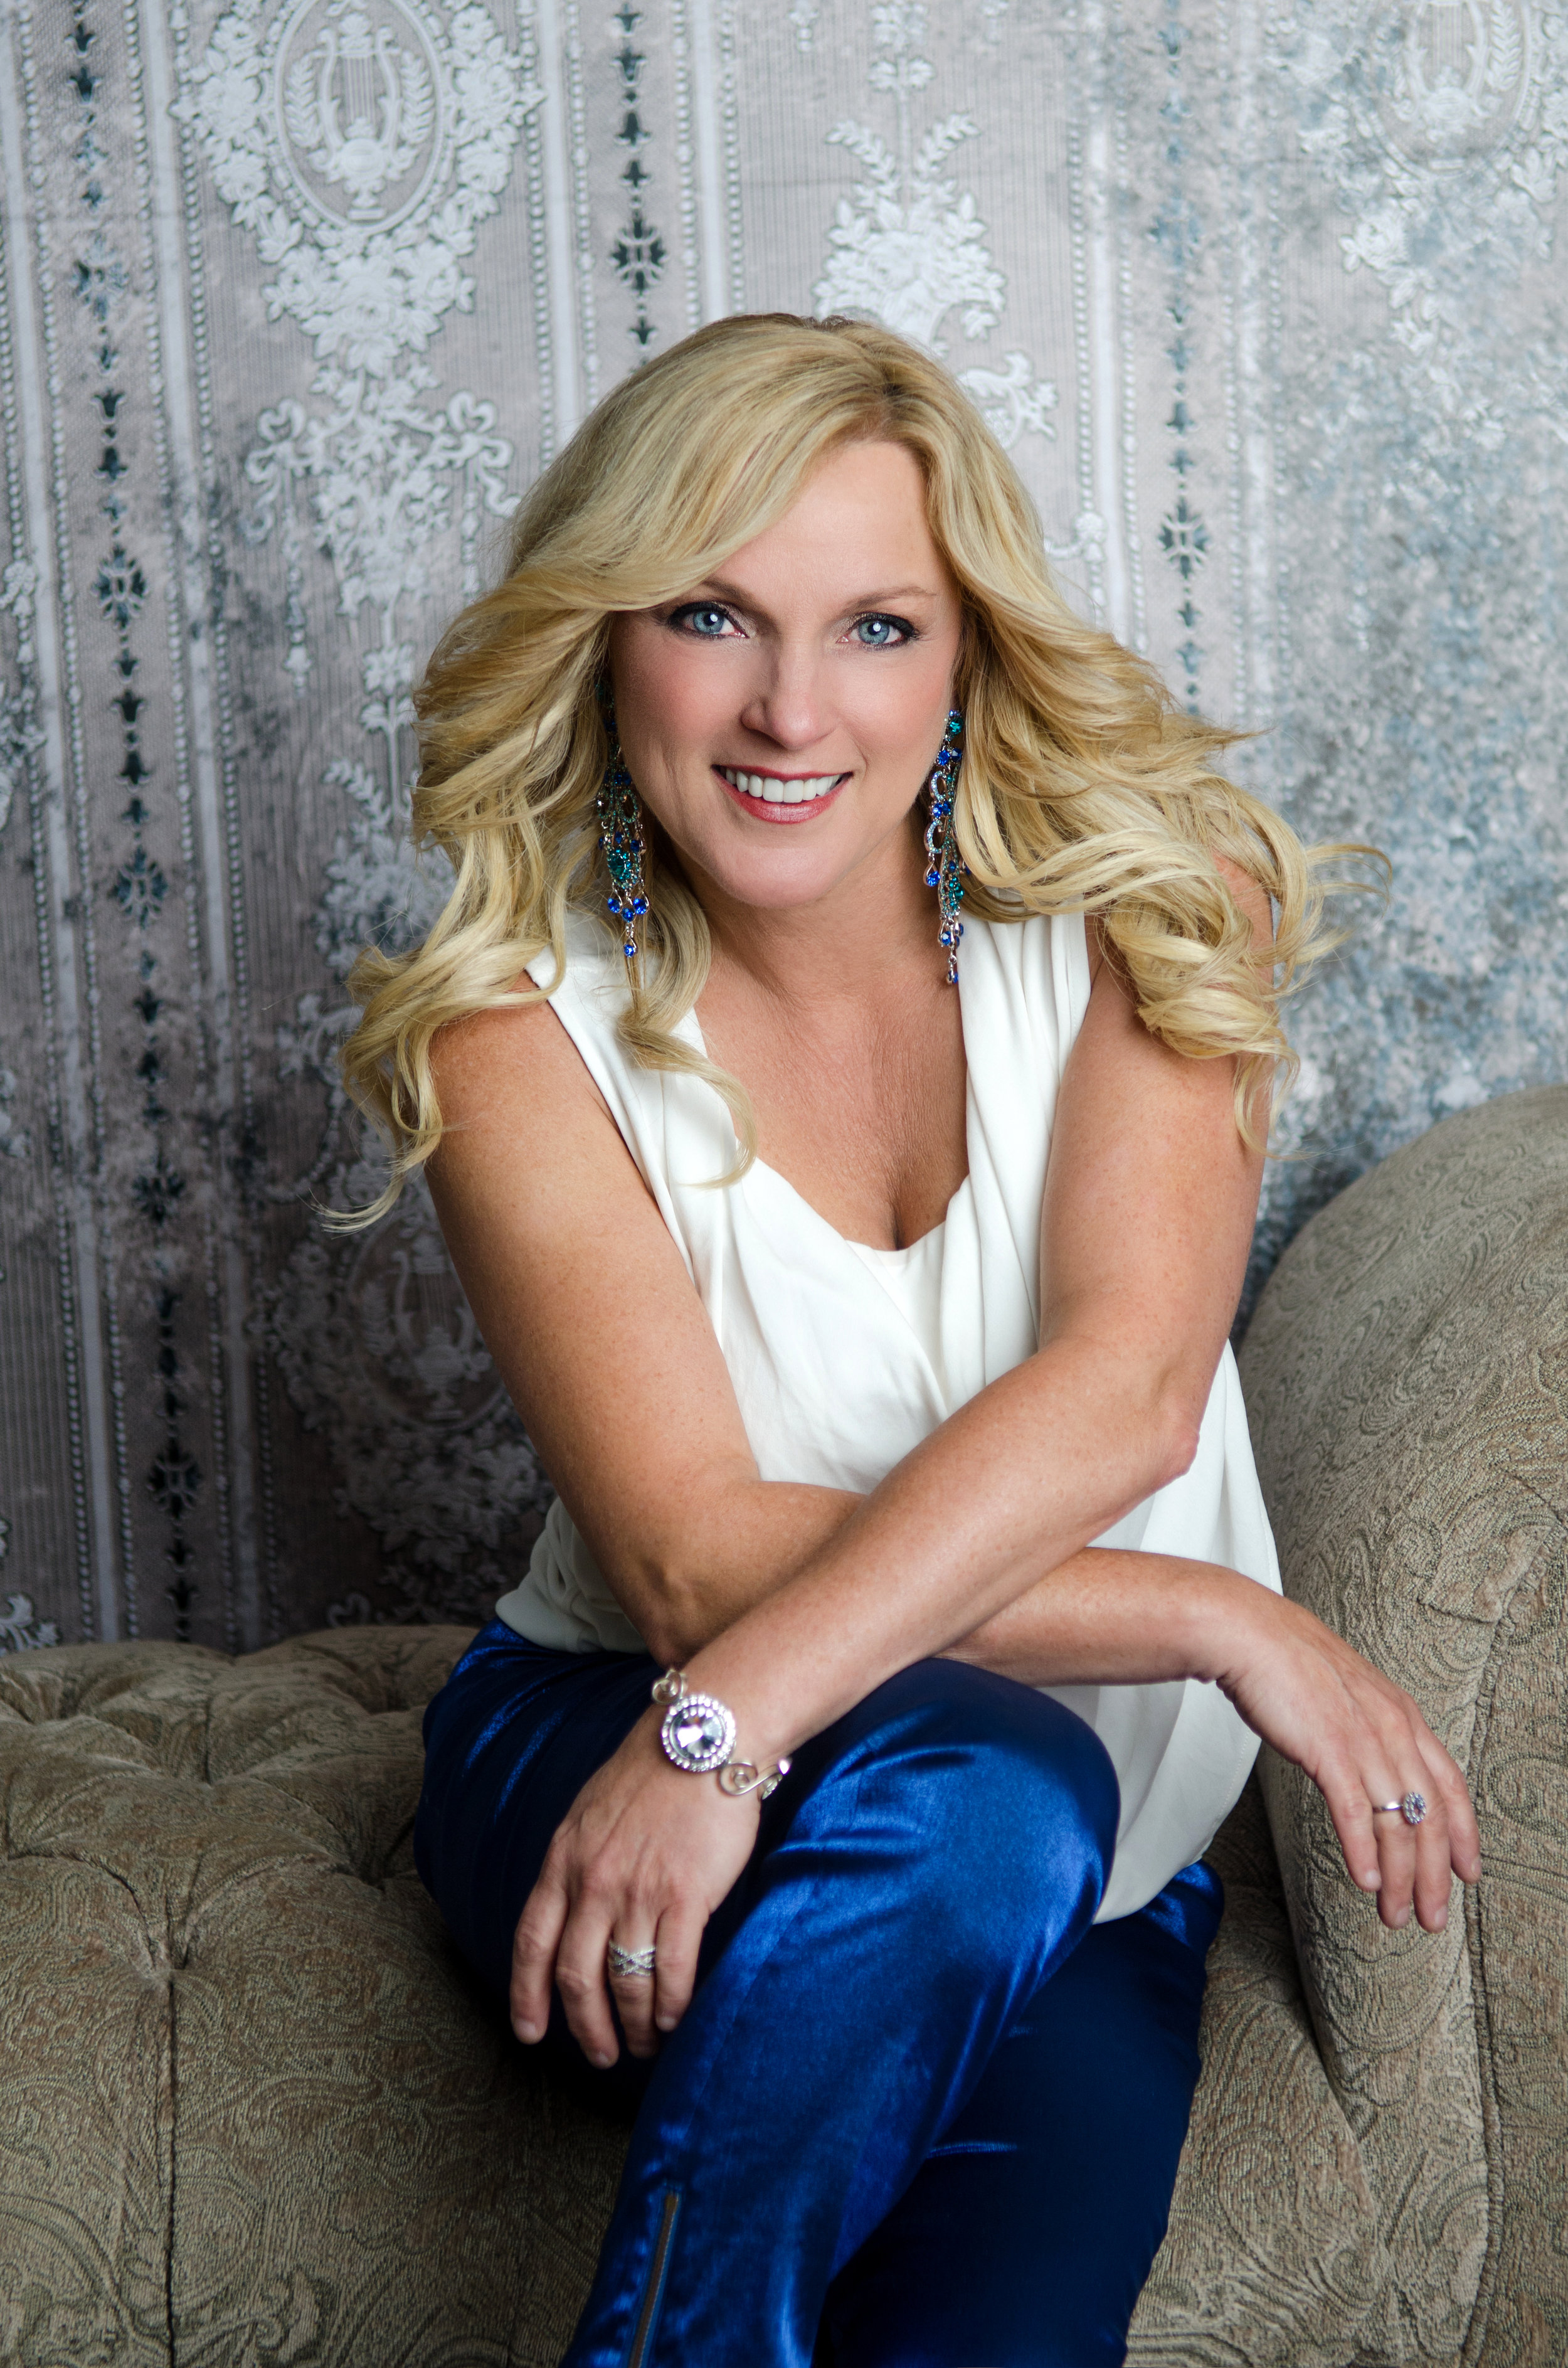 """The Voice of Rhonda Vincent is the centerpiece, surrounded by the rhythms of each instrument; featuring the individual styles of the world class musicians that collectively make up The Rage. Vincent is a Grammy and Dove Award winner, producer and musician. Rightfully called """"The Queen Of Bluegrass"""" Rhonda lends her voice to Ray's project where they both deliver a performance that will go down in history as one of the best versions of """"The Old Rugged Cross""""."""